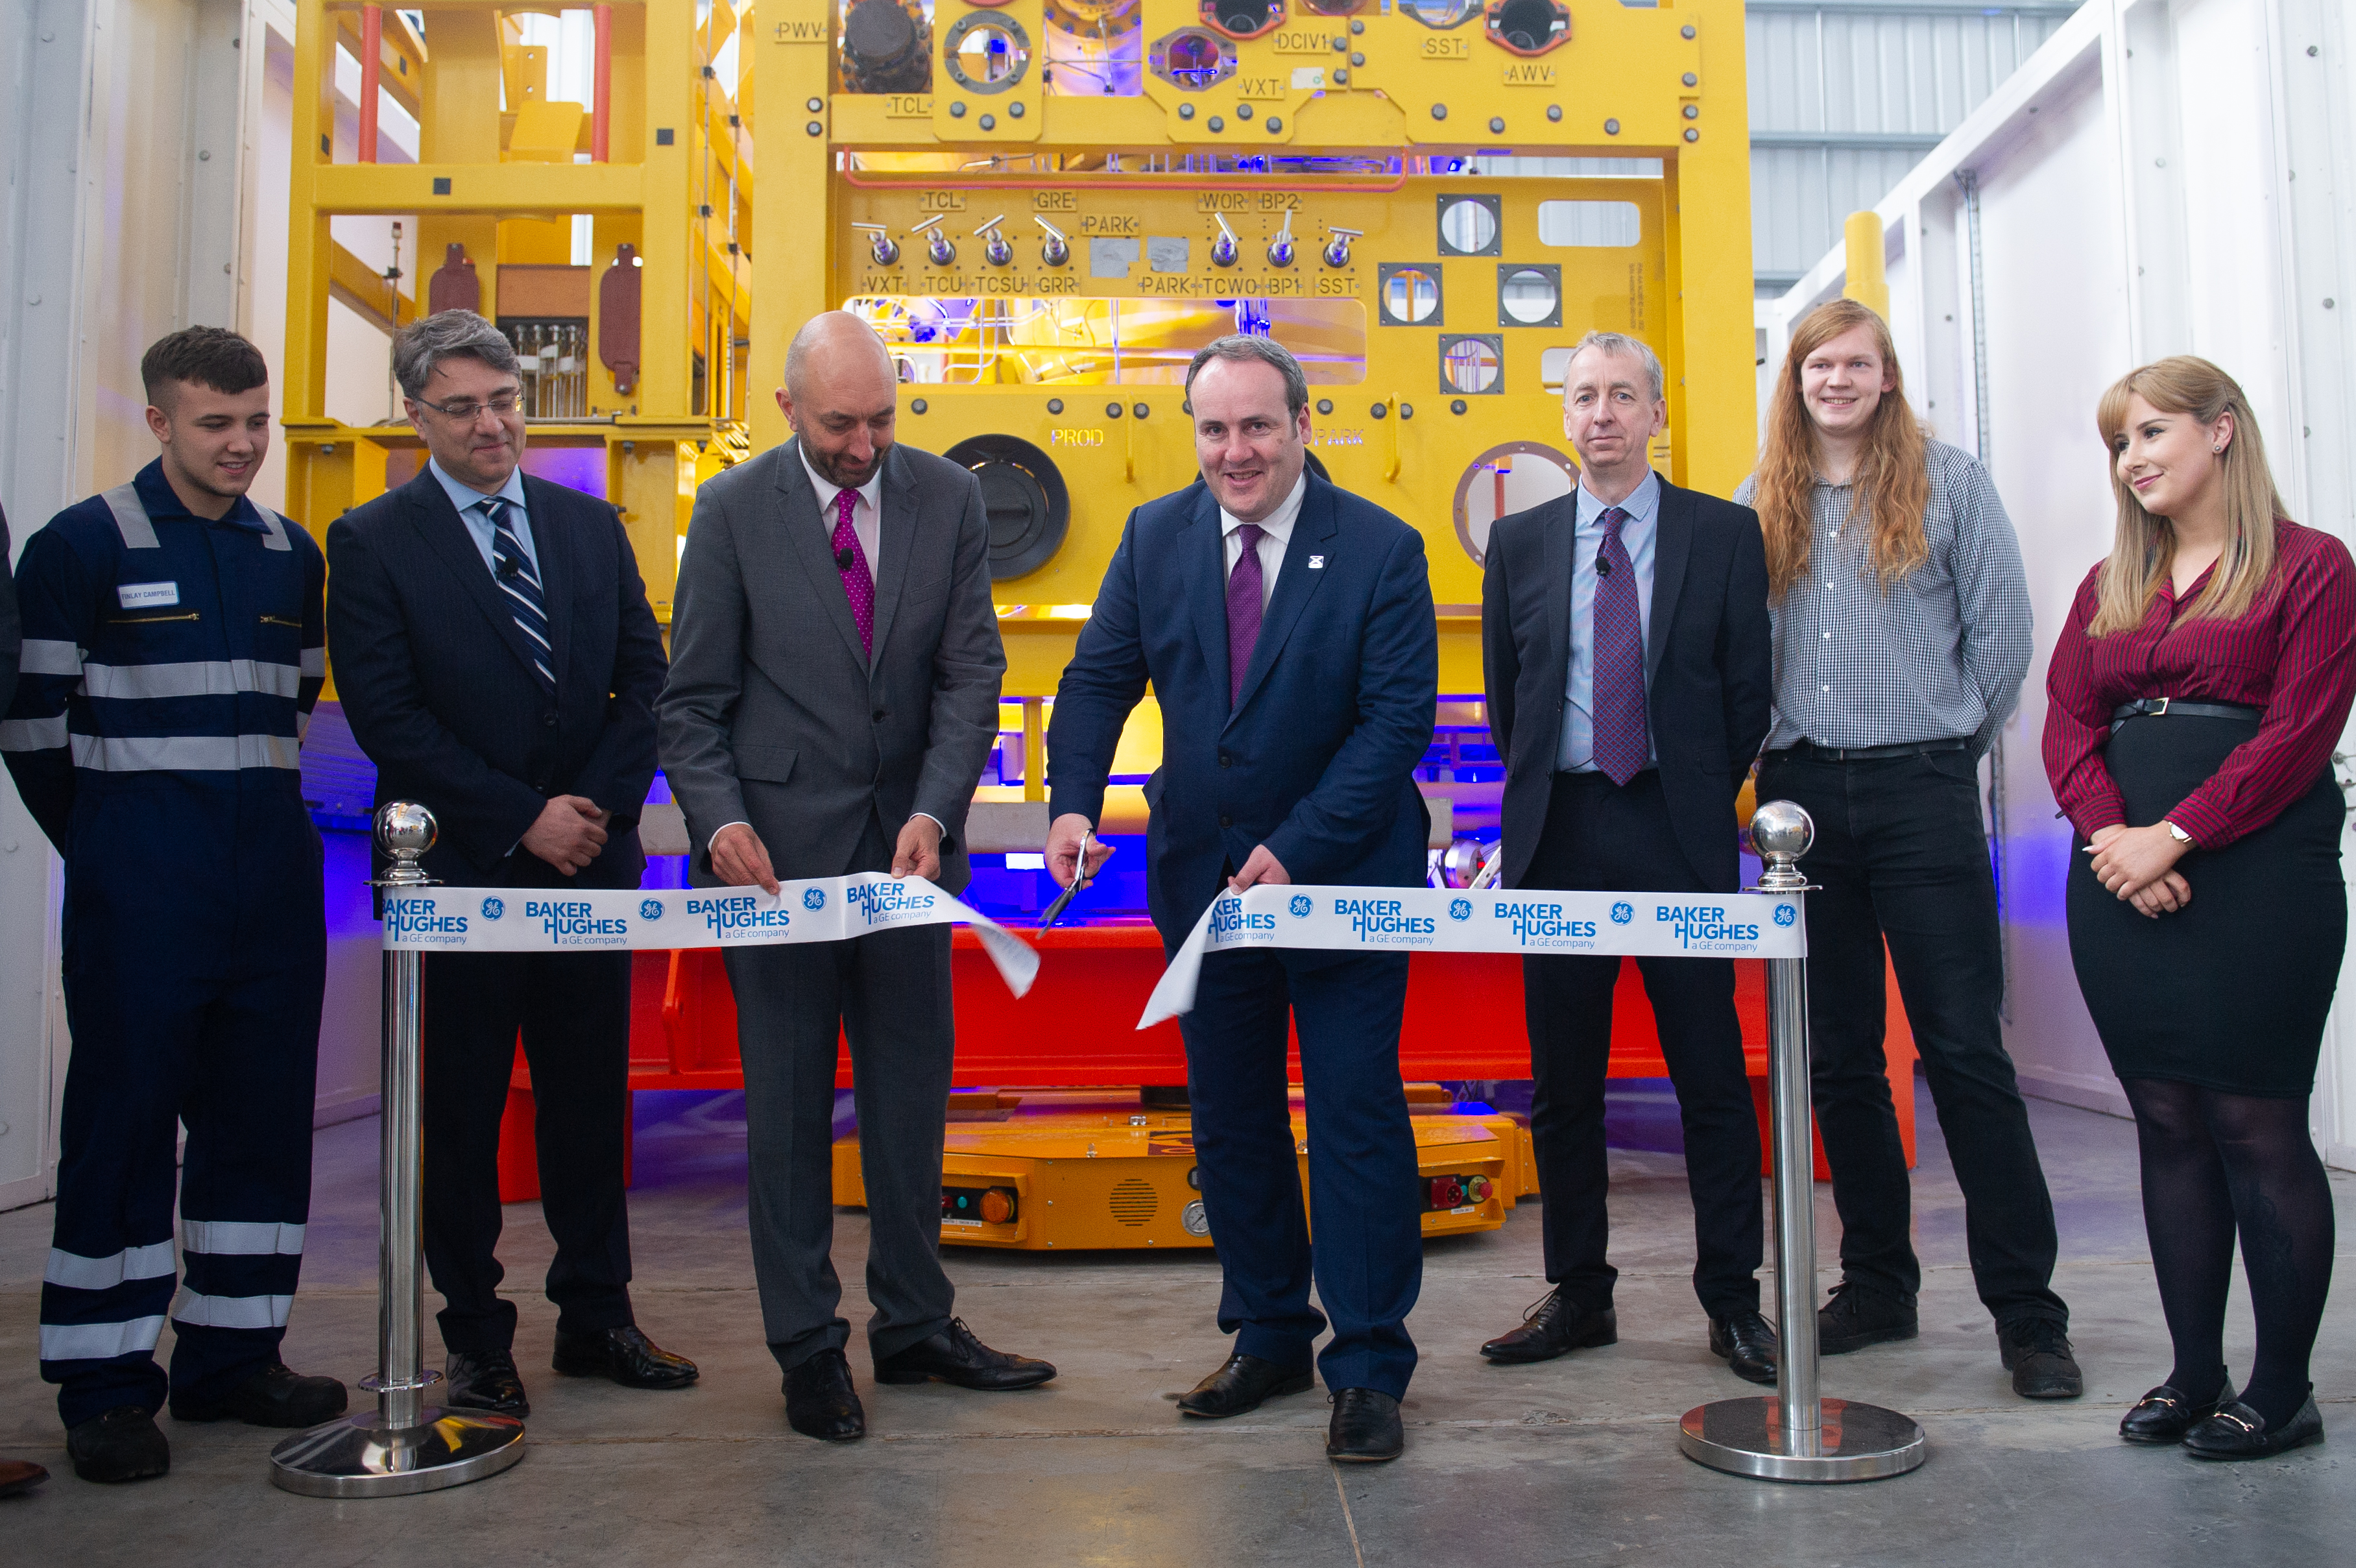 The opening of the  new BHGE Montrose Subsea Centre of Excellence in 2019 with - l to r - Lorenzo Romagnoli Global Supply Chain Director, SPS & Services, BHGE Oilfield Equipment), Neil Saunders (President and CEO, BHGE Oilfield Equipment), Paul Wheelhouse (Minister for Energy, Connectivity and the Islands) and John Kerr (VP and Chief Technology Officer, BHGE Oilfield Equipment).